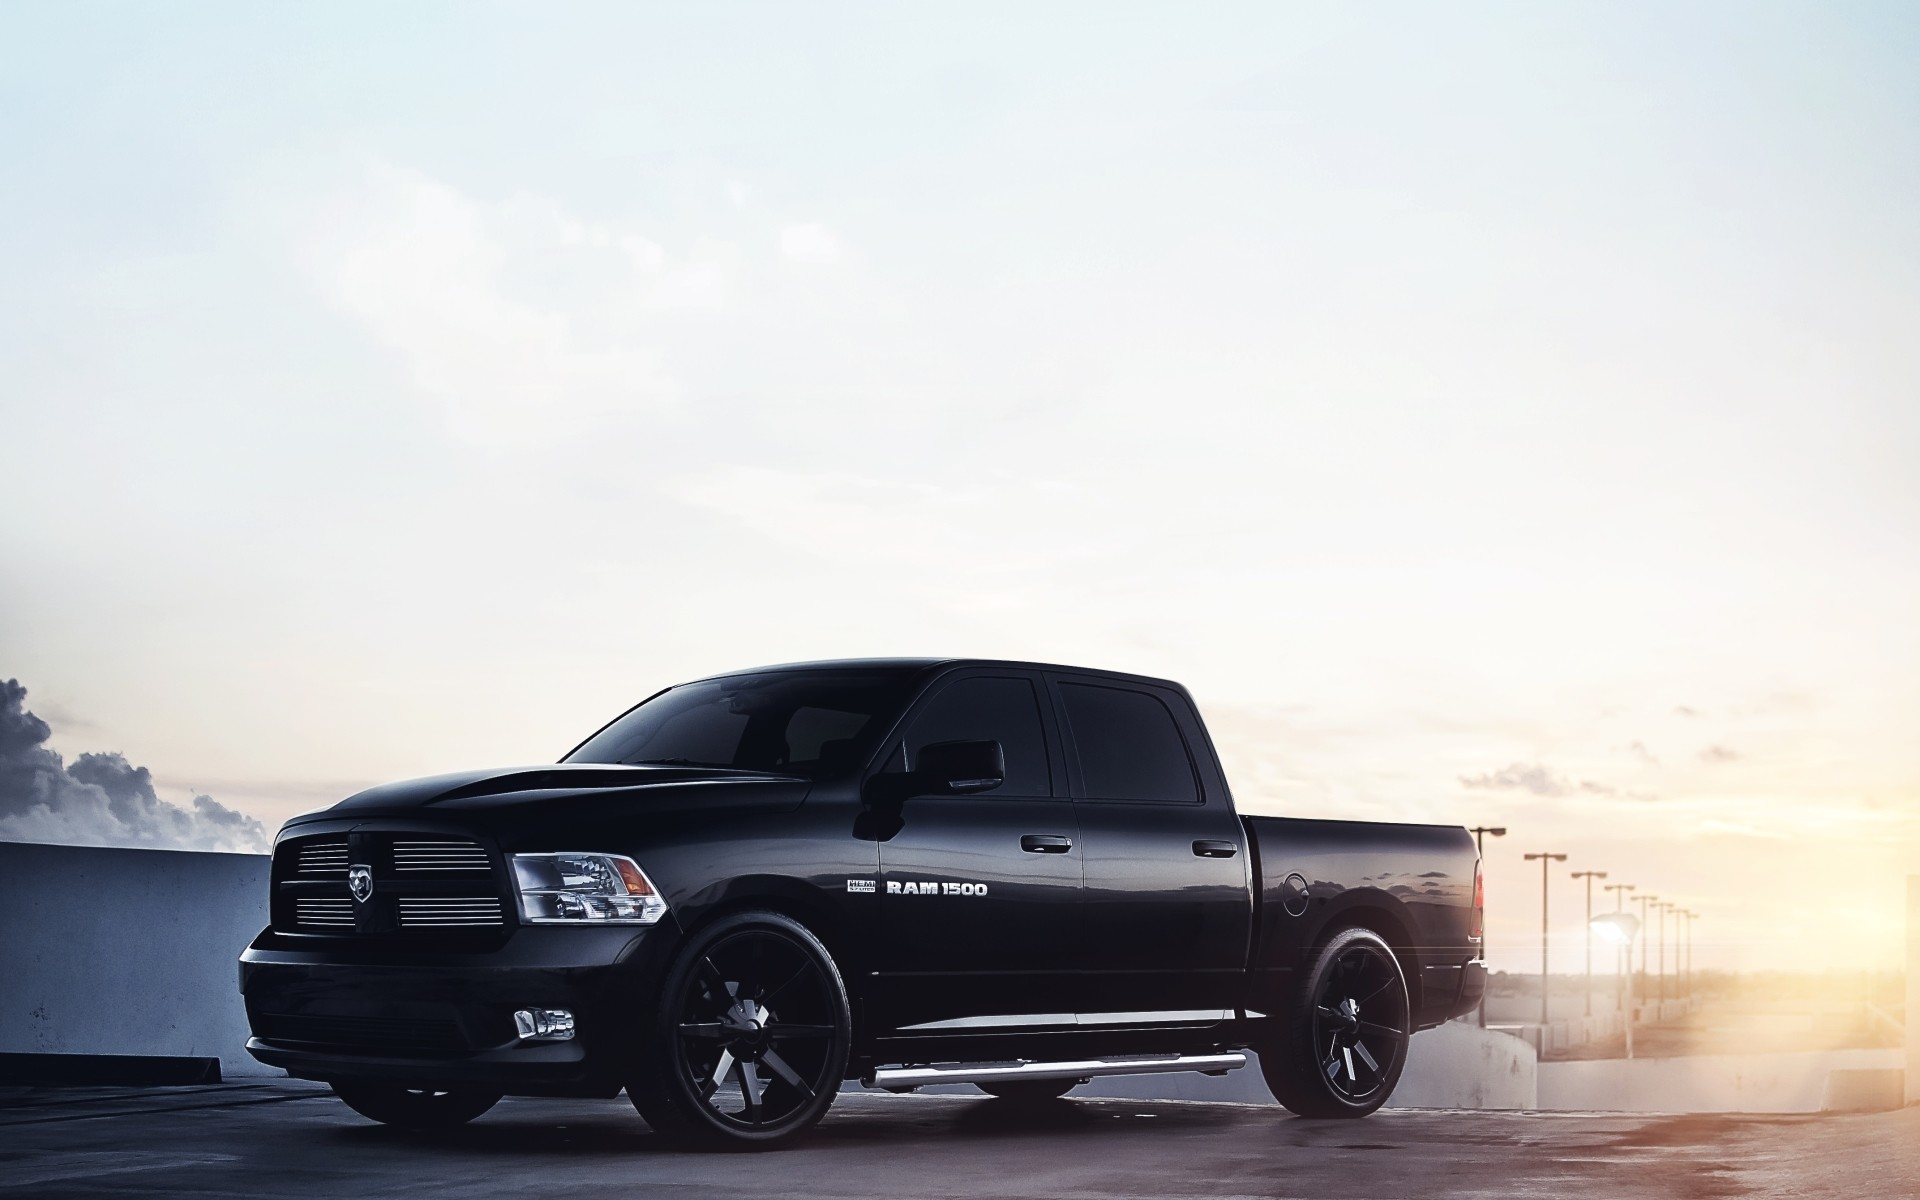 54 Dodge Ram Logo Wallpaper Hd